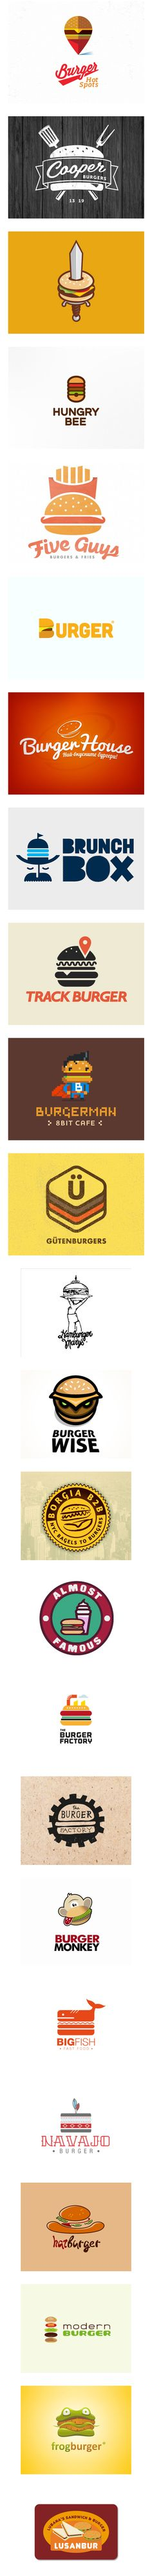 Some cute burger logos :]